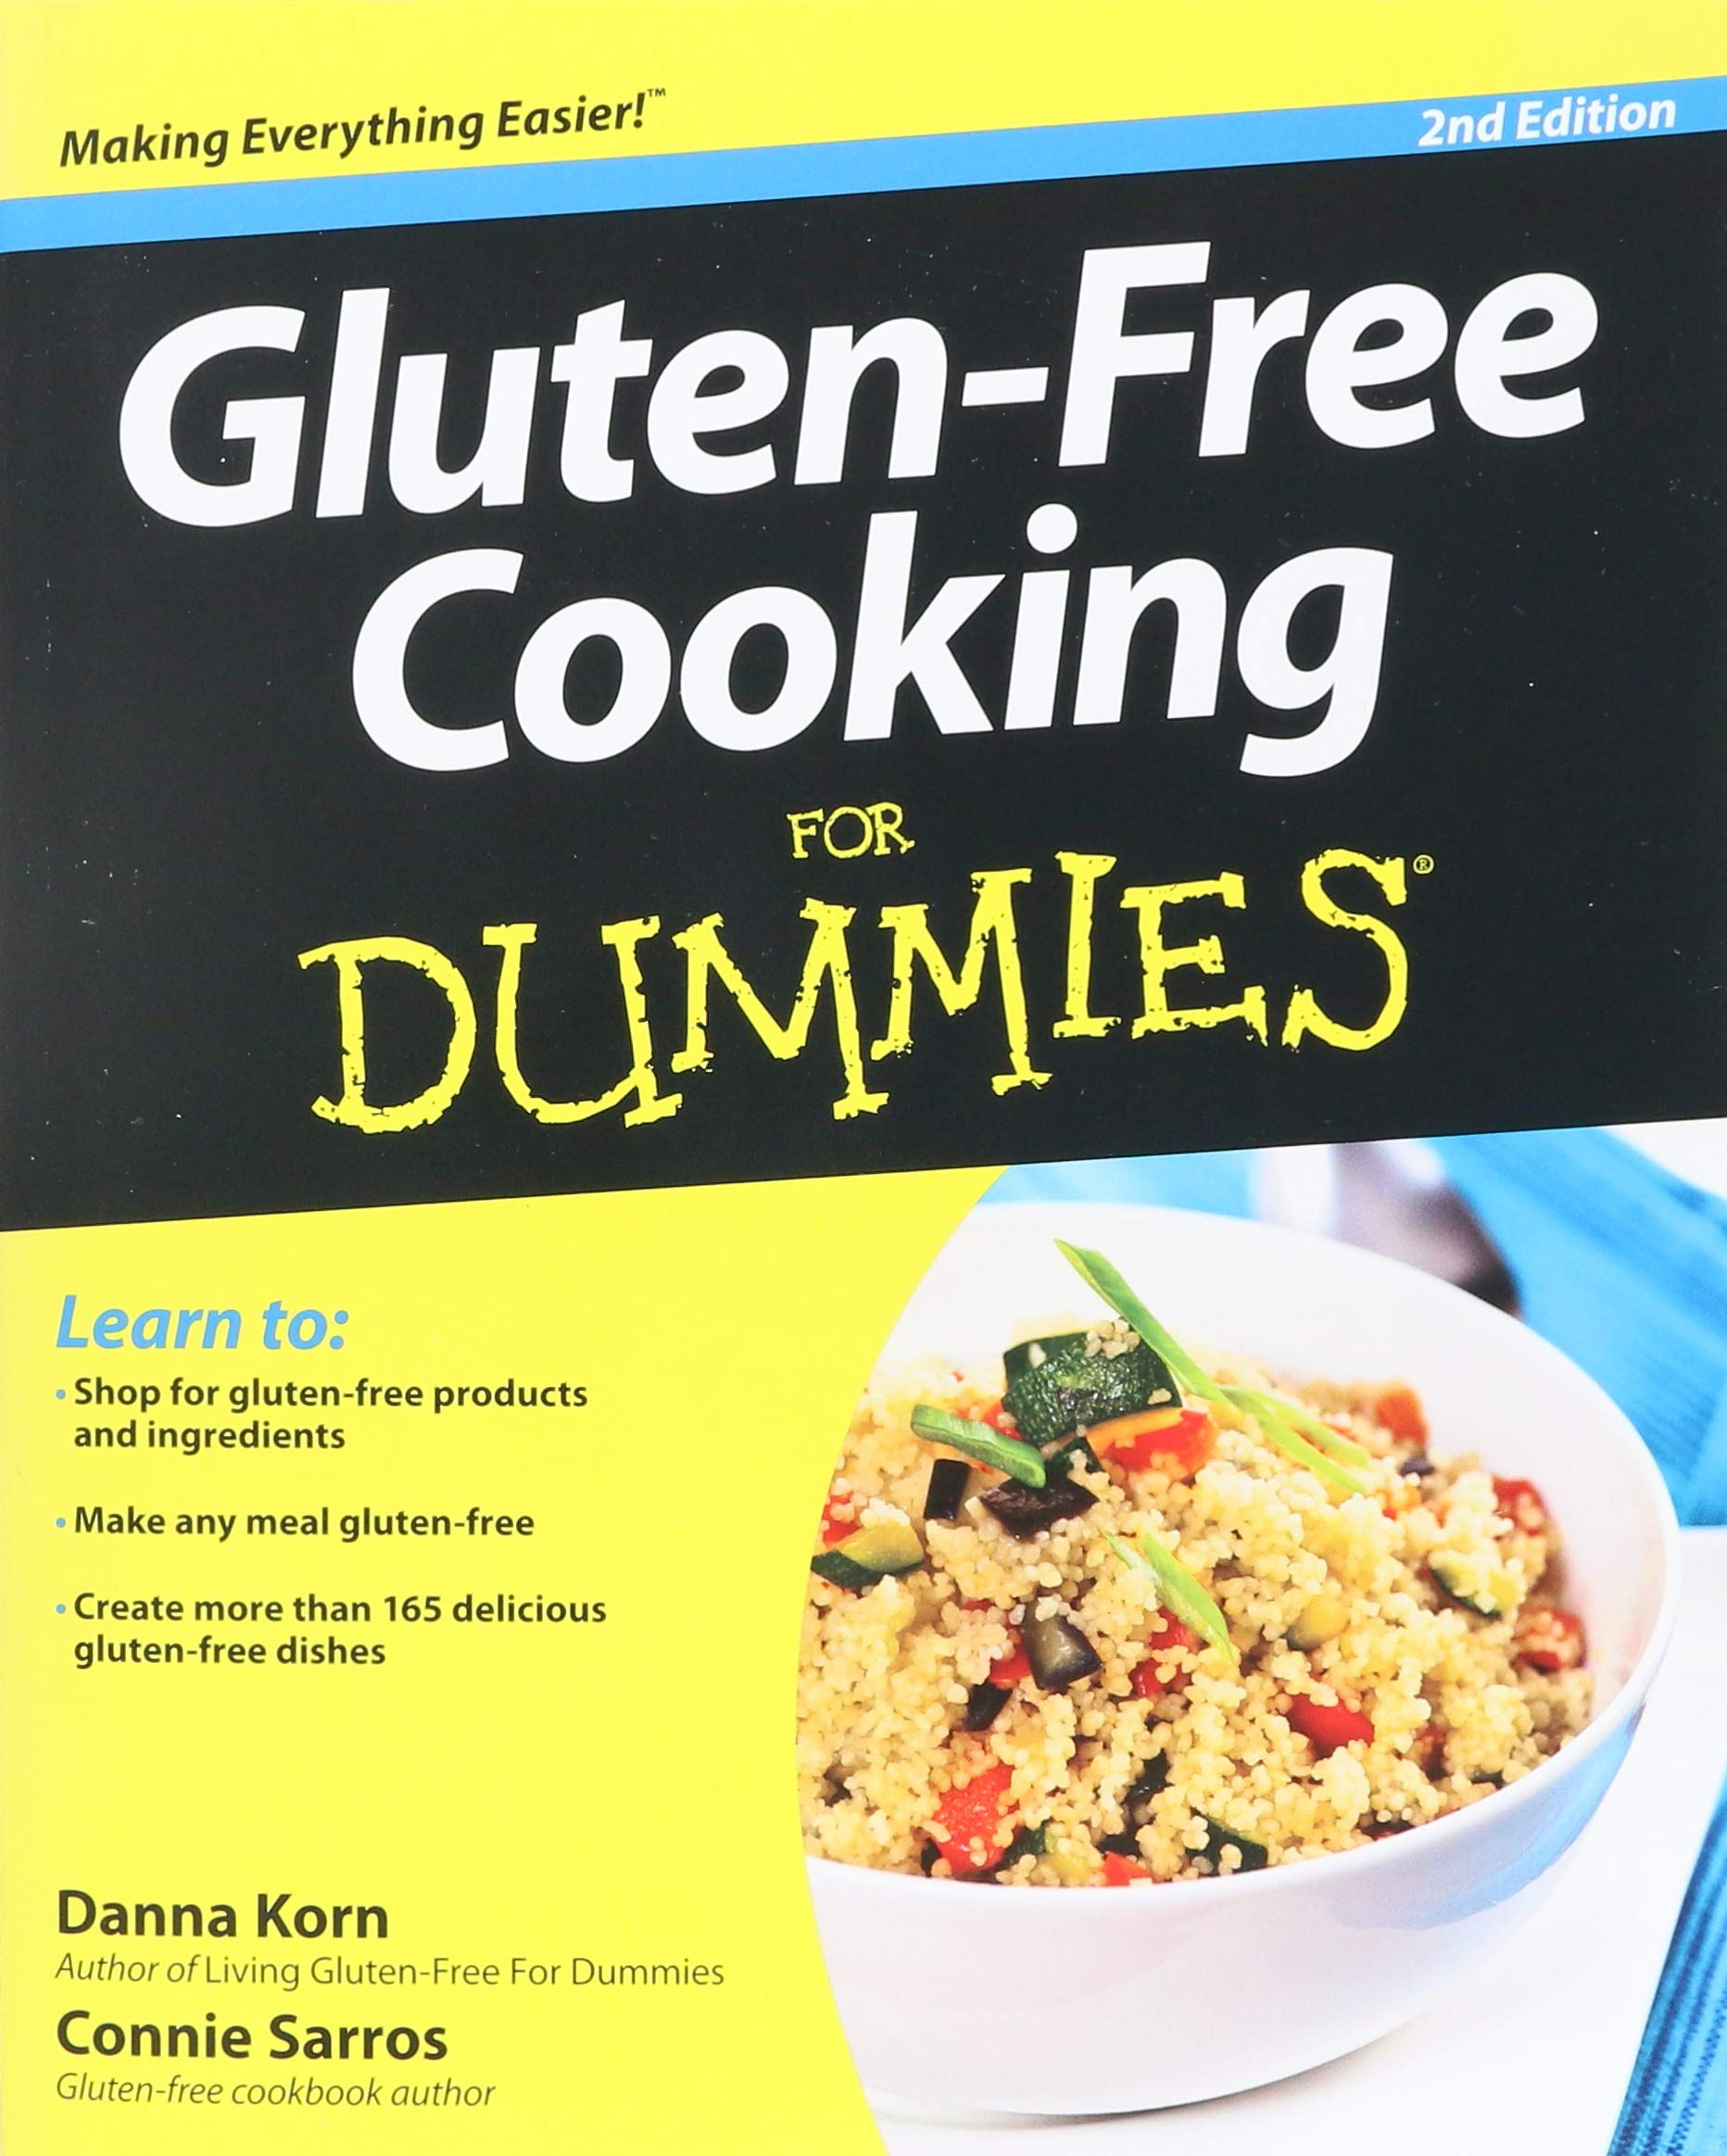 Gluten-Free Cooking For Dummies: Danna Korn: 9781118396445: Amazon.com:  Books